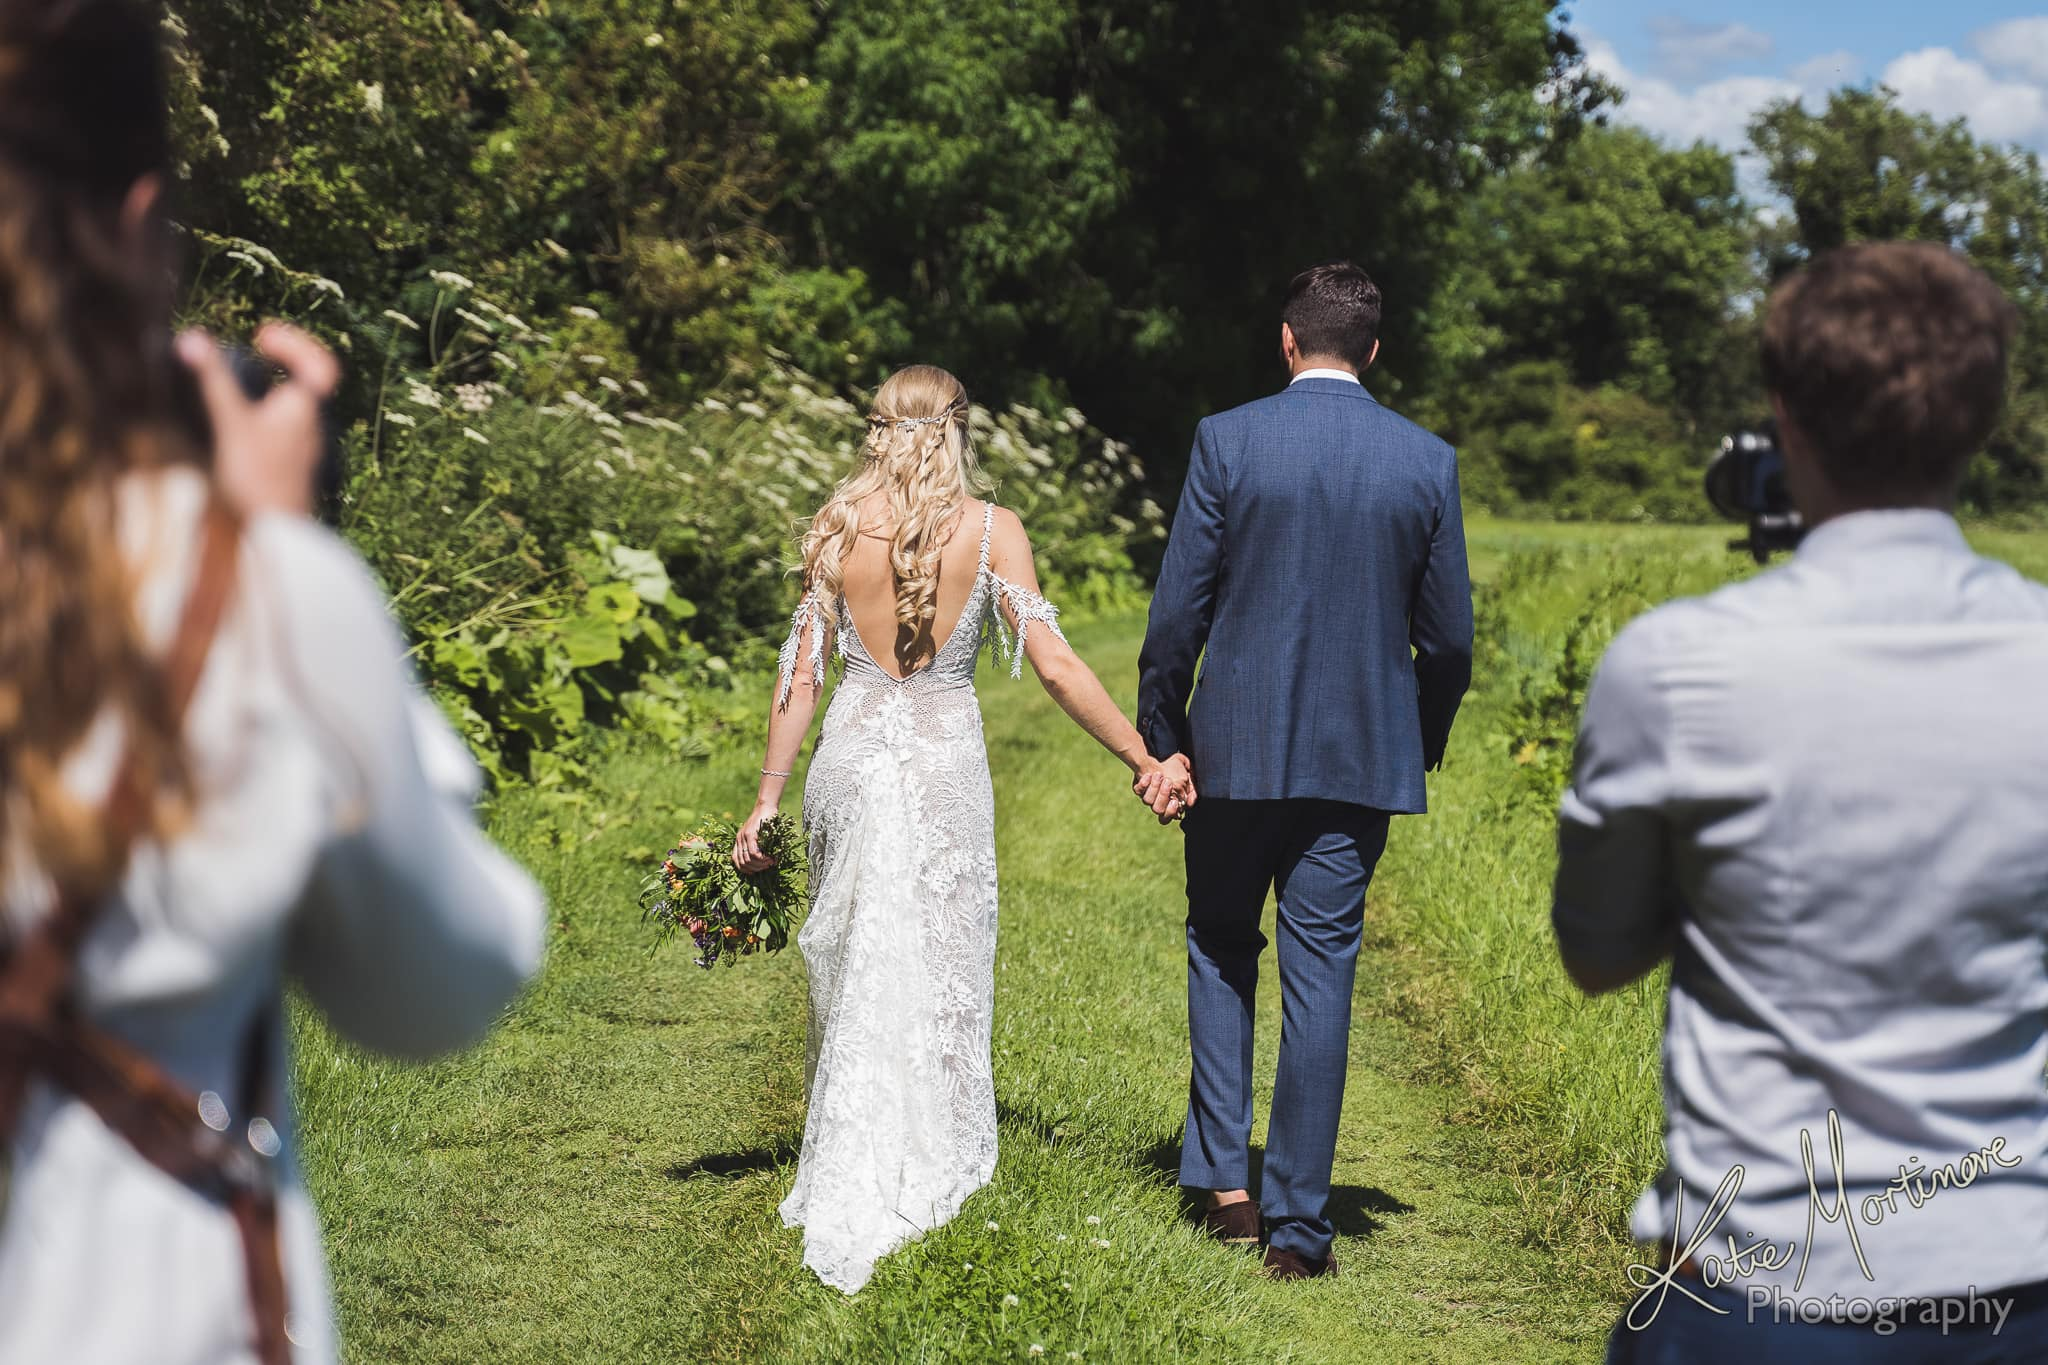 wedding photography hampshire wiltshire cottonworth vineyard fullerton estate